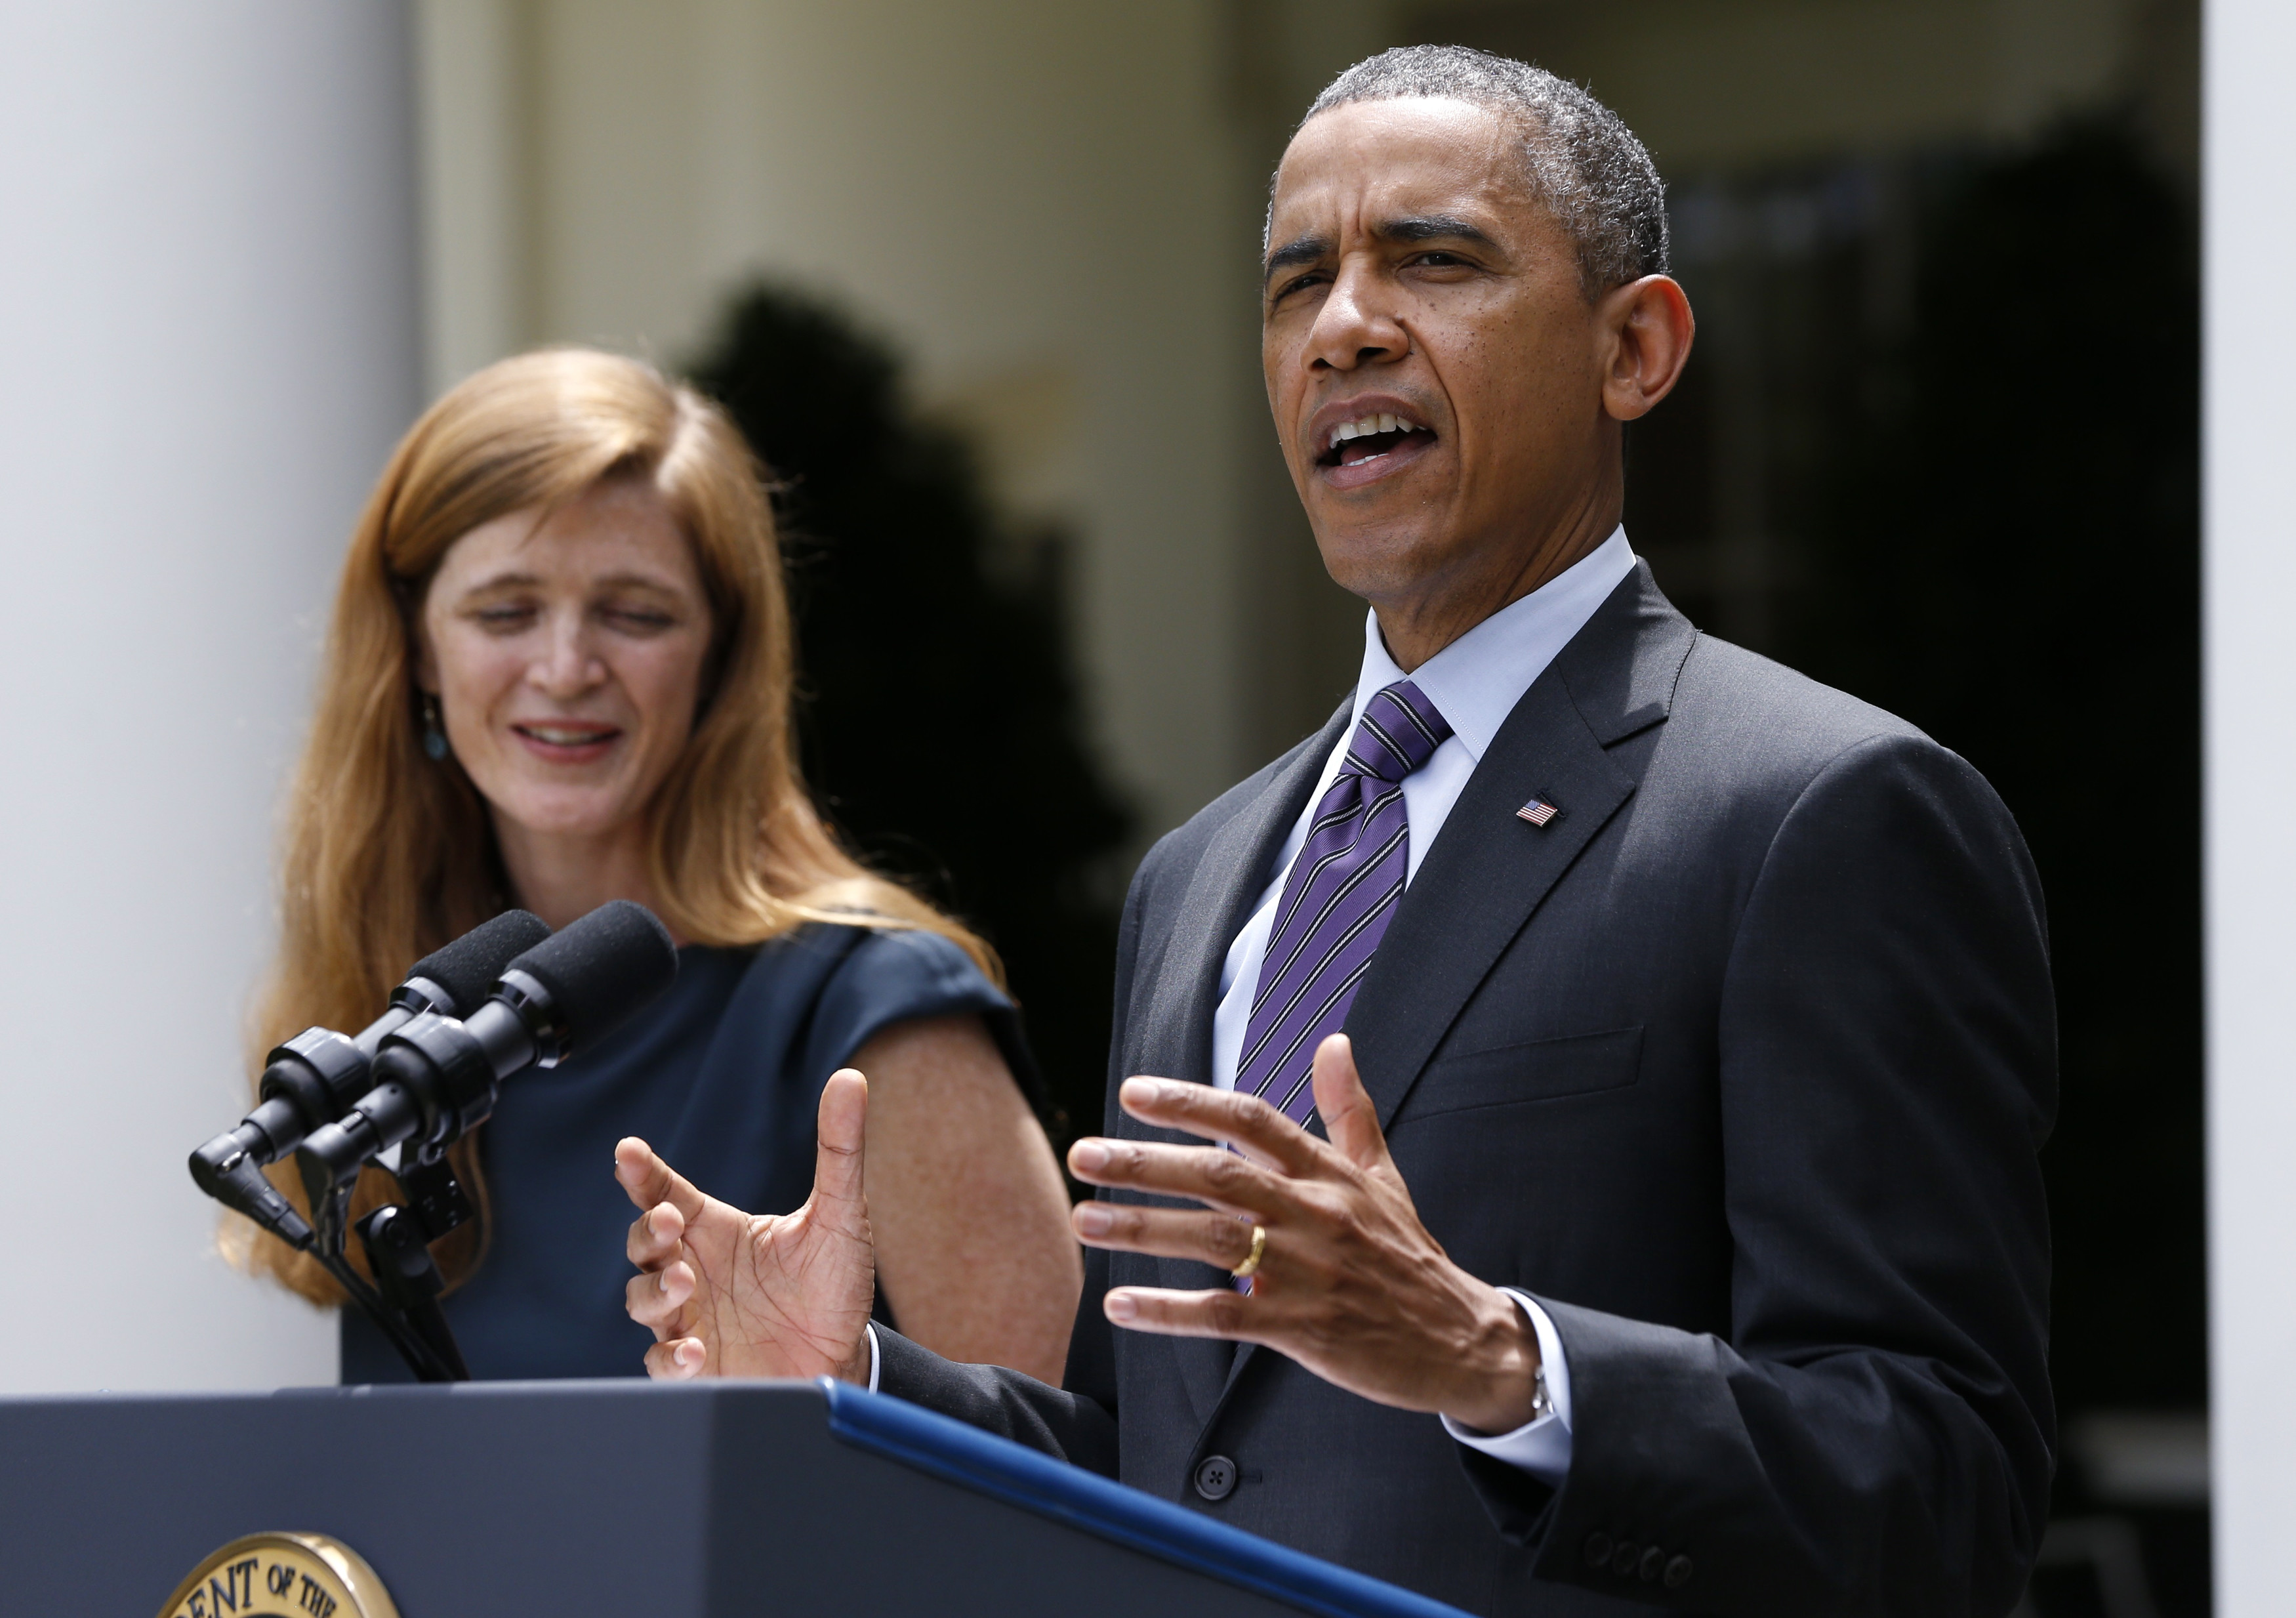 U.S. President Barack Obama announces the nomination of Samantha Power (L) to replace Susan Rice as U.N ambassador, in the Rose Garden of the White House in Washington, June 5, 2013. Obama earlier announced the appointment of Rice as national security advisor. REUTERS/Jason Reed (UNITED STATES  - Tags: POLITICS)  - TB3E9651HN1LK